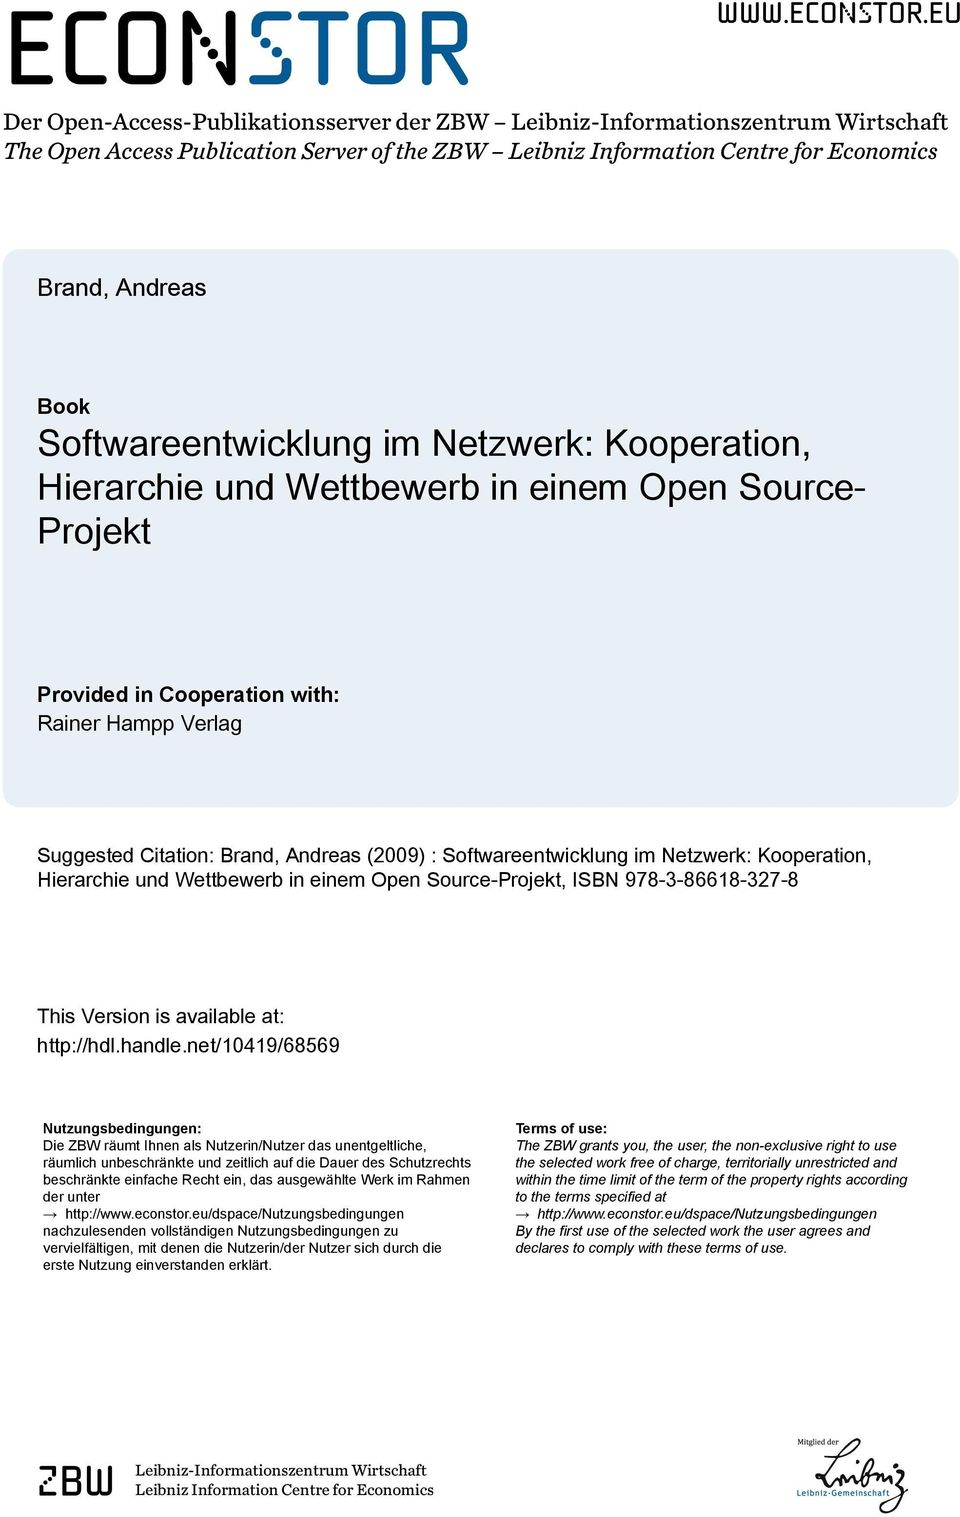 eu Der Open-Access-Publikationsserver der ZBW Leibniz-Informationszentrum Wirtschaft The Open Access Publication Server of the ZBW Leibniz Information Centre for Economics Brand, Andreas Book